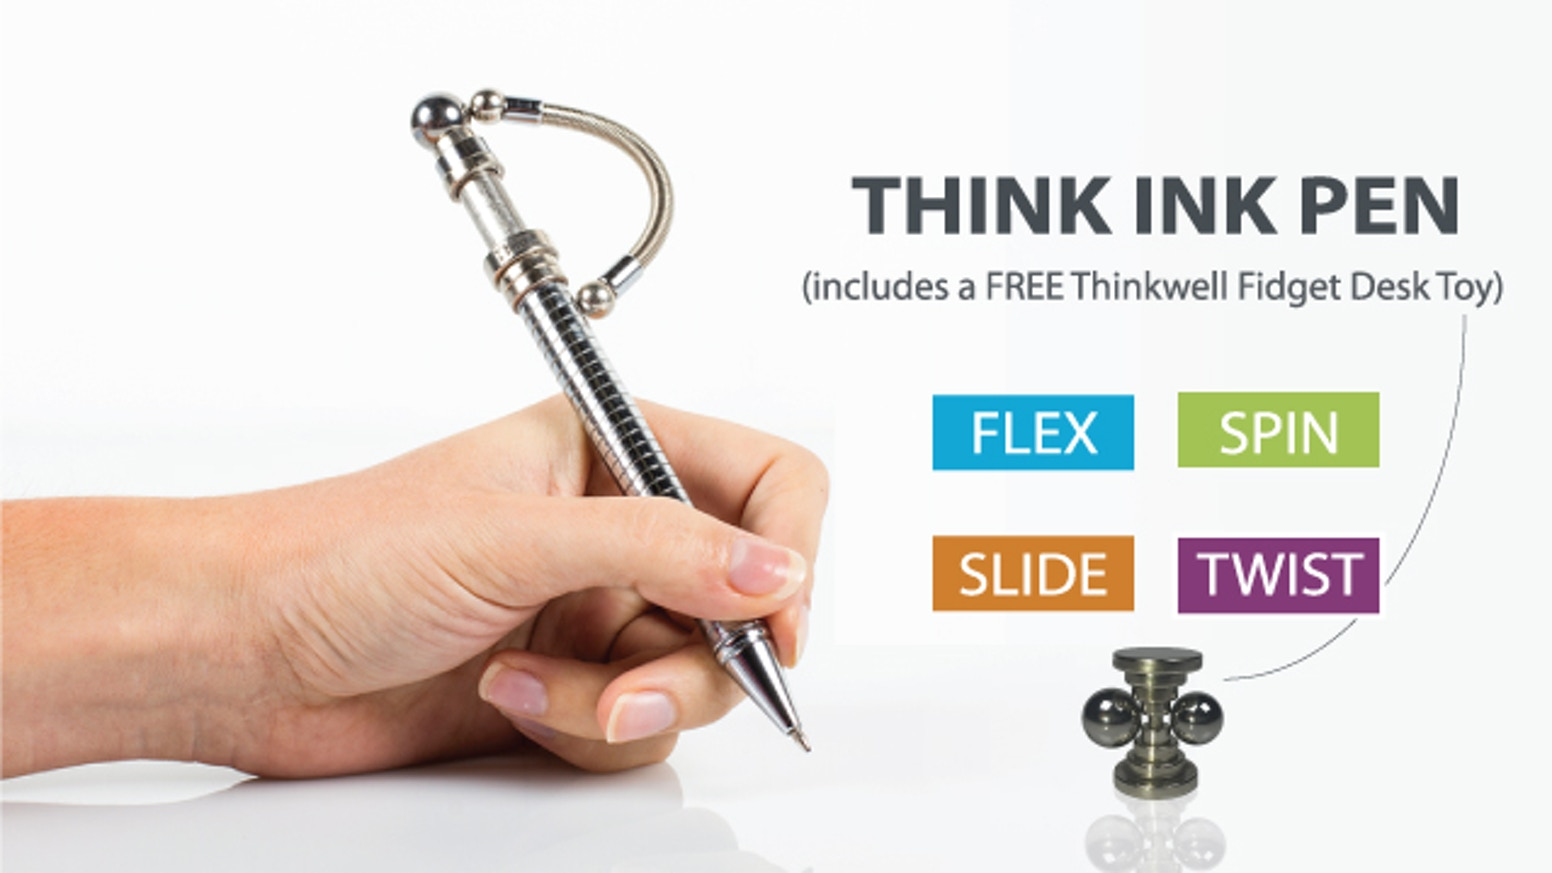 Not just a toy, Think Ink is a ball point pen and a discreet fidgeting tool designed to help individuals of any age stay focused